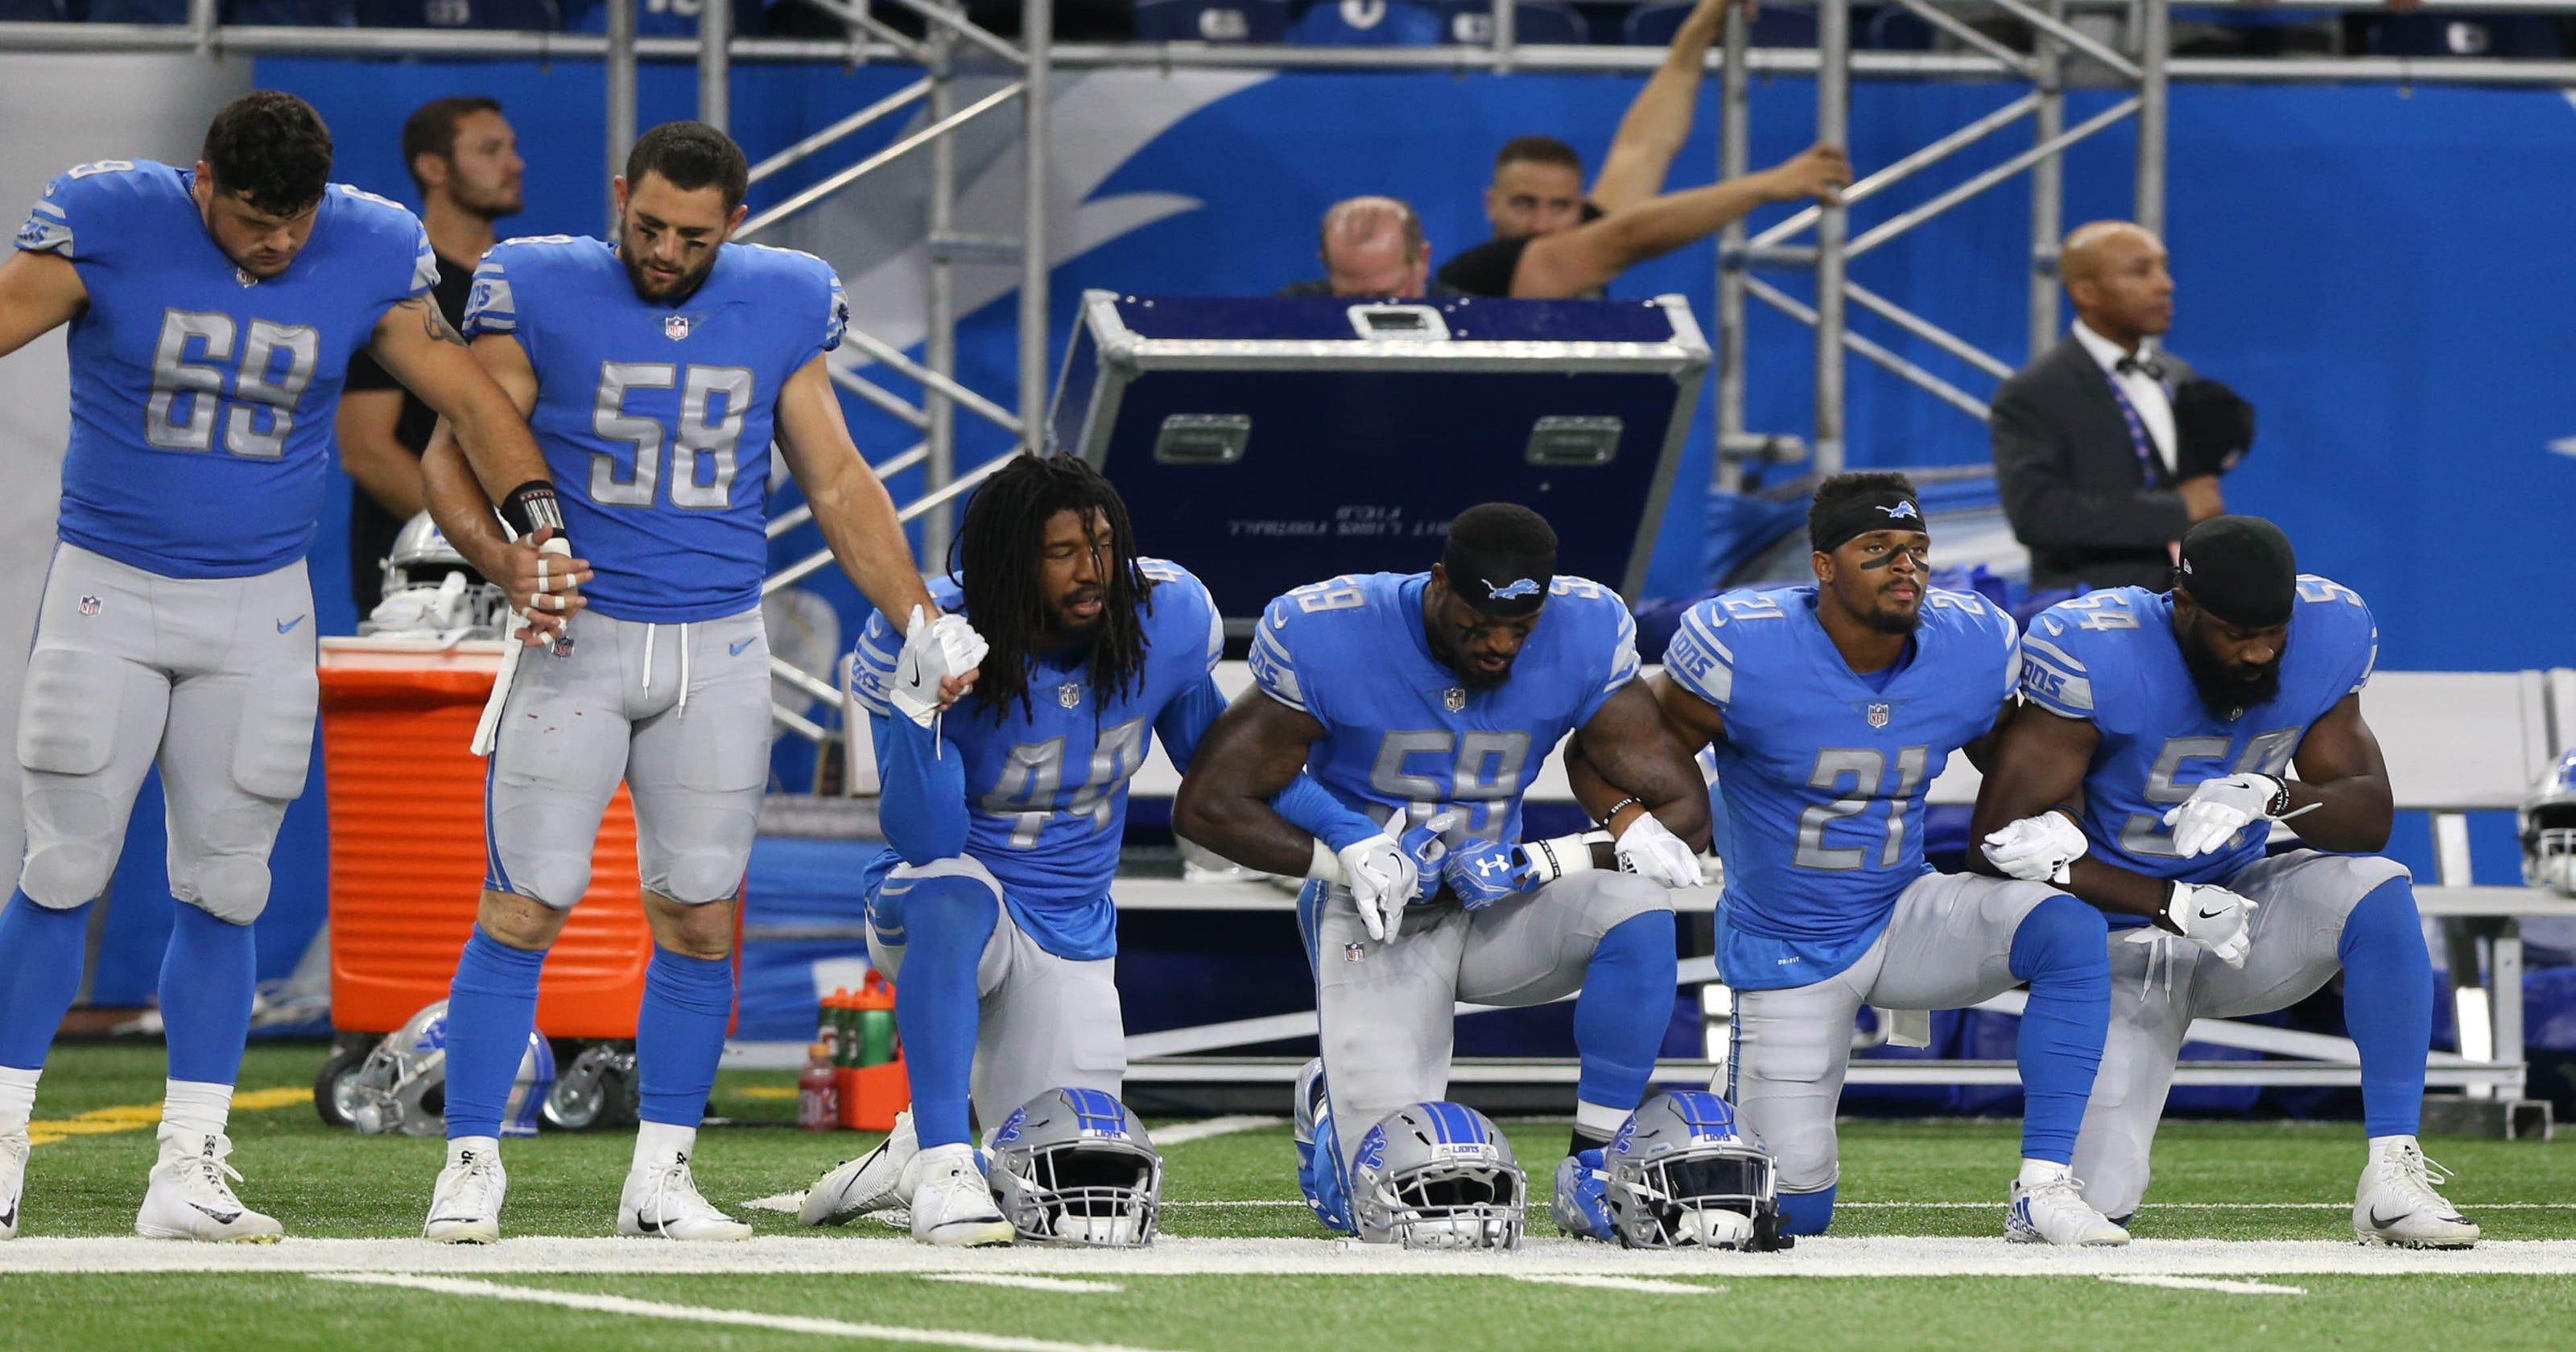 ab893c79fb8 Black Army veteran honored by Detroit Lions, salutes during national anthem